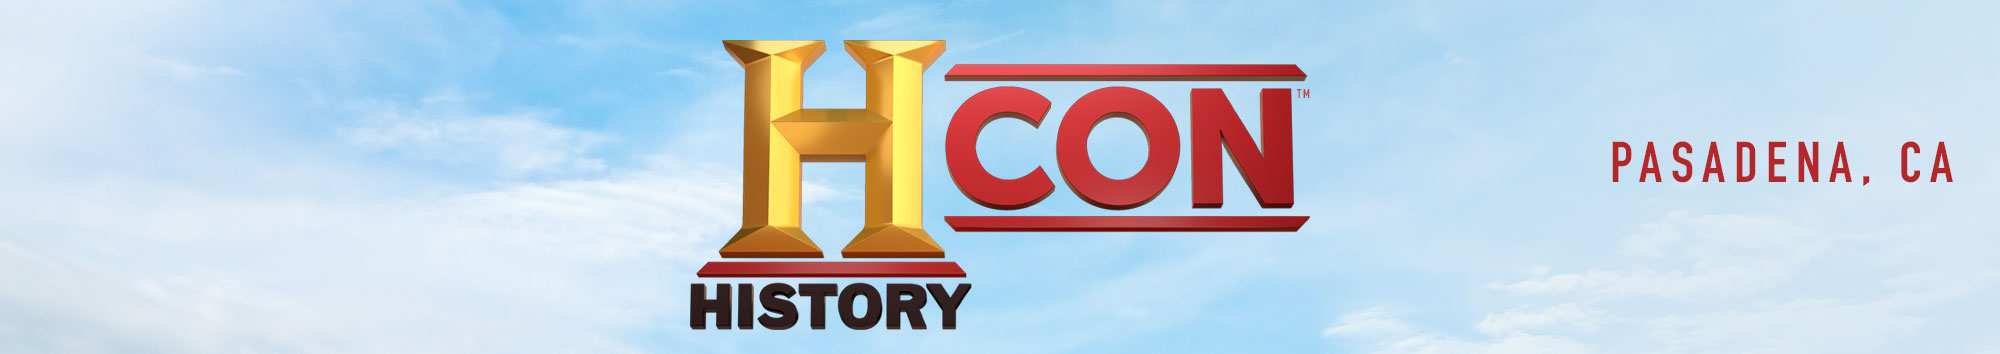 Tickets for HISTORYCon in Pasadena from ShowClix